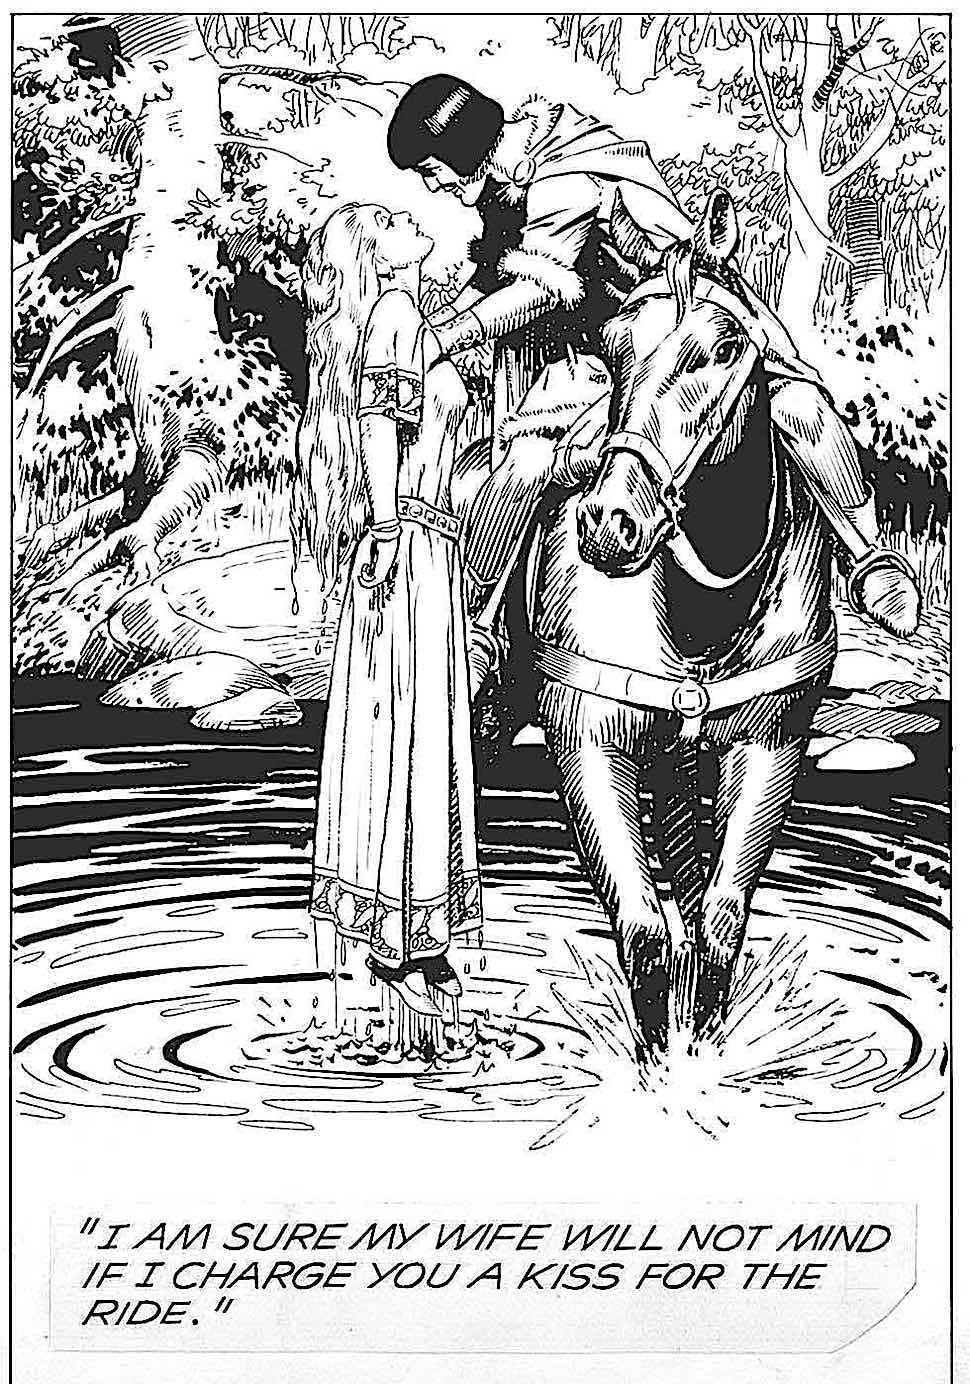 Hal Foster 1957 art for English legend Prince Valient, I am sure my wife will not mind if I charge you a kiss for the ride